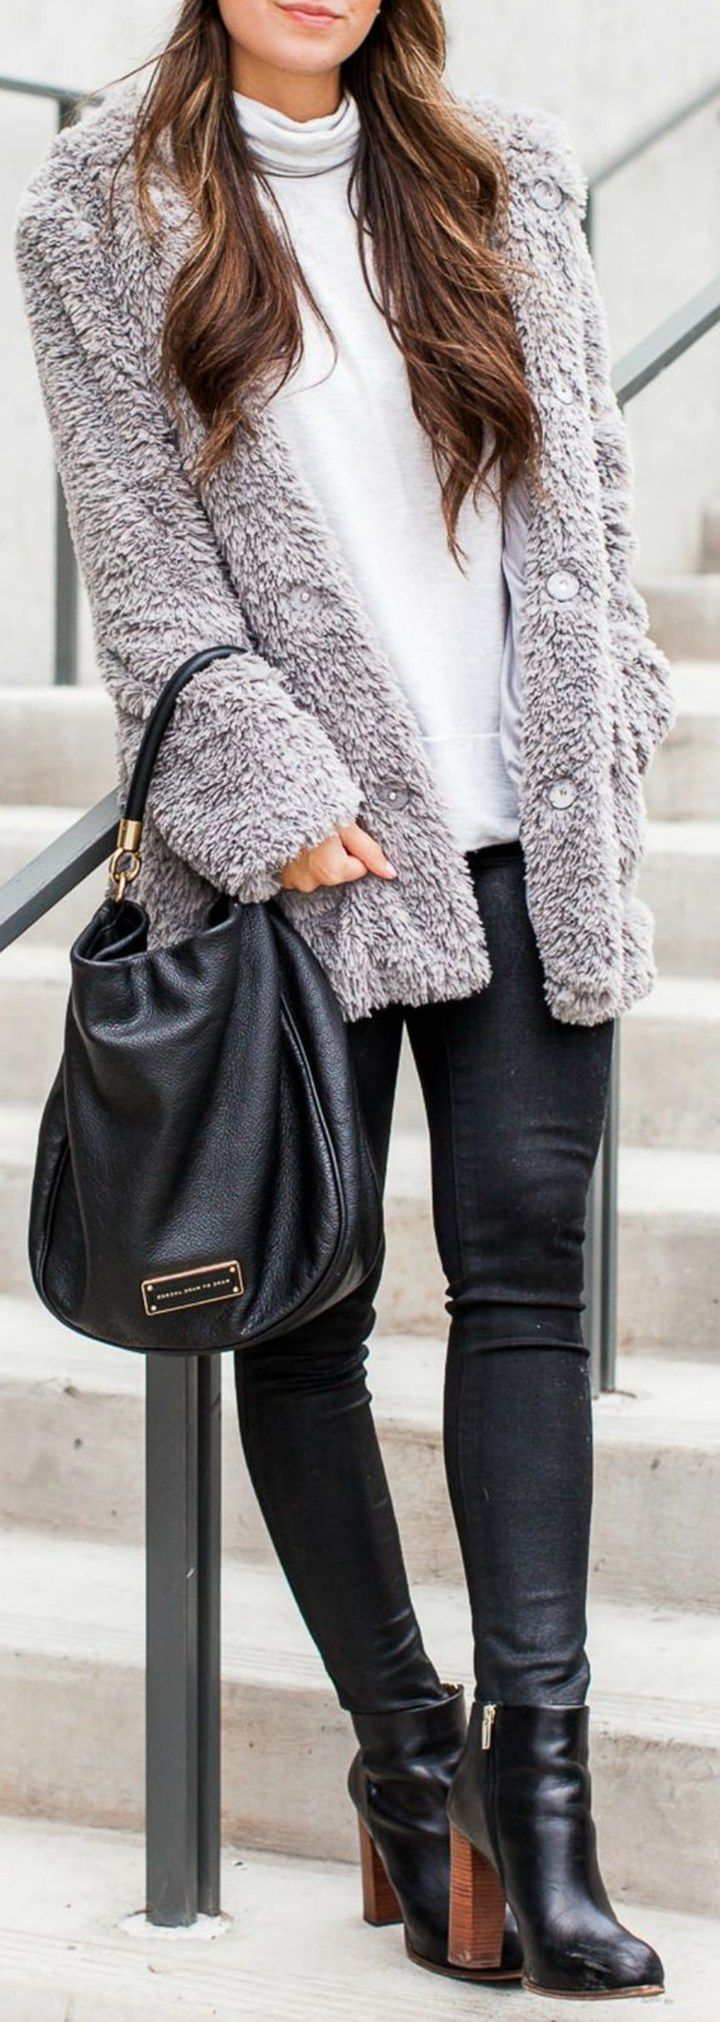 Business Casual Outfit Ideas for Women for Work for Winter for Office for Young Professionals - ideas de trajes de trabajo para mujeres - www.Poshiroo.com #WomenCasualShoes